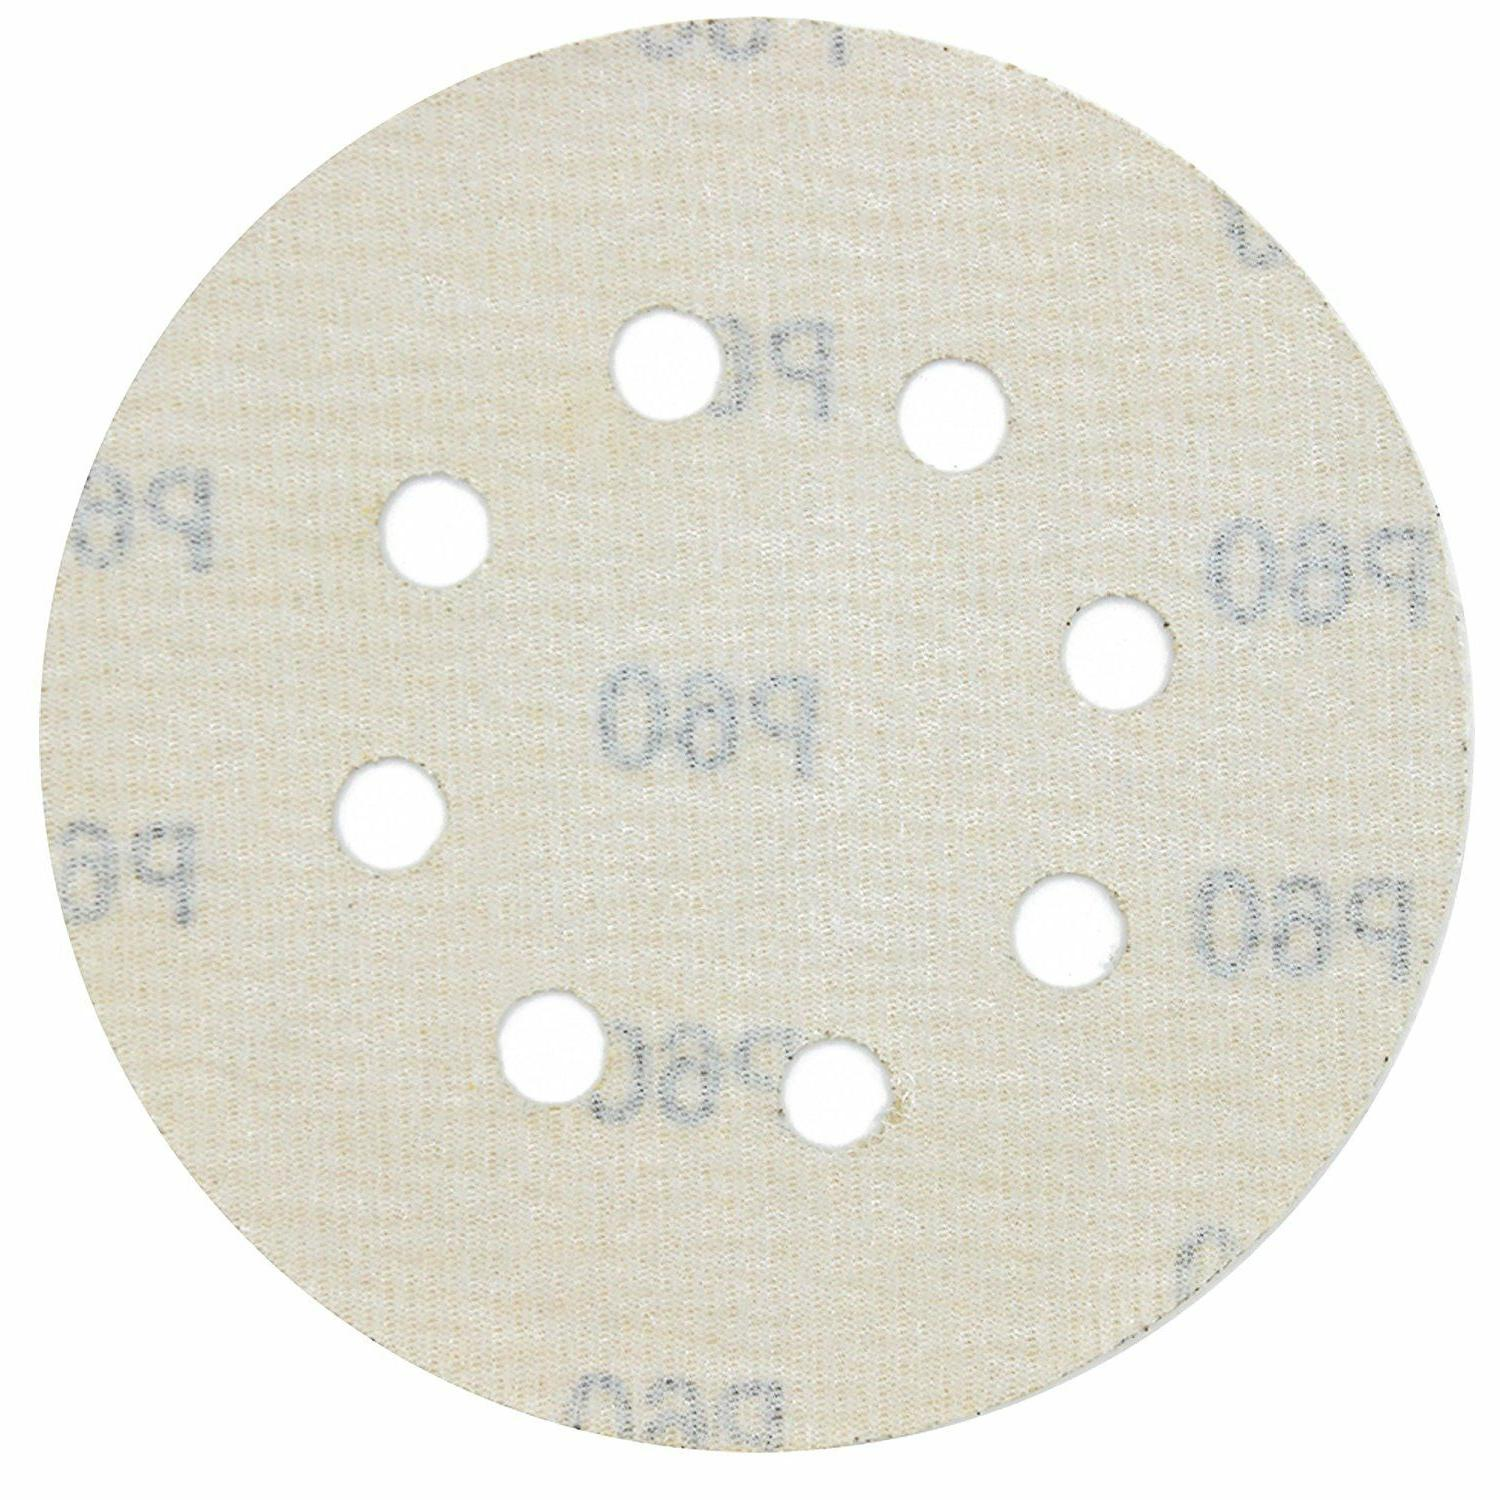 100pcs Grit and Sanding Sandpaper Sander Pads Sheets